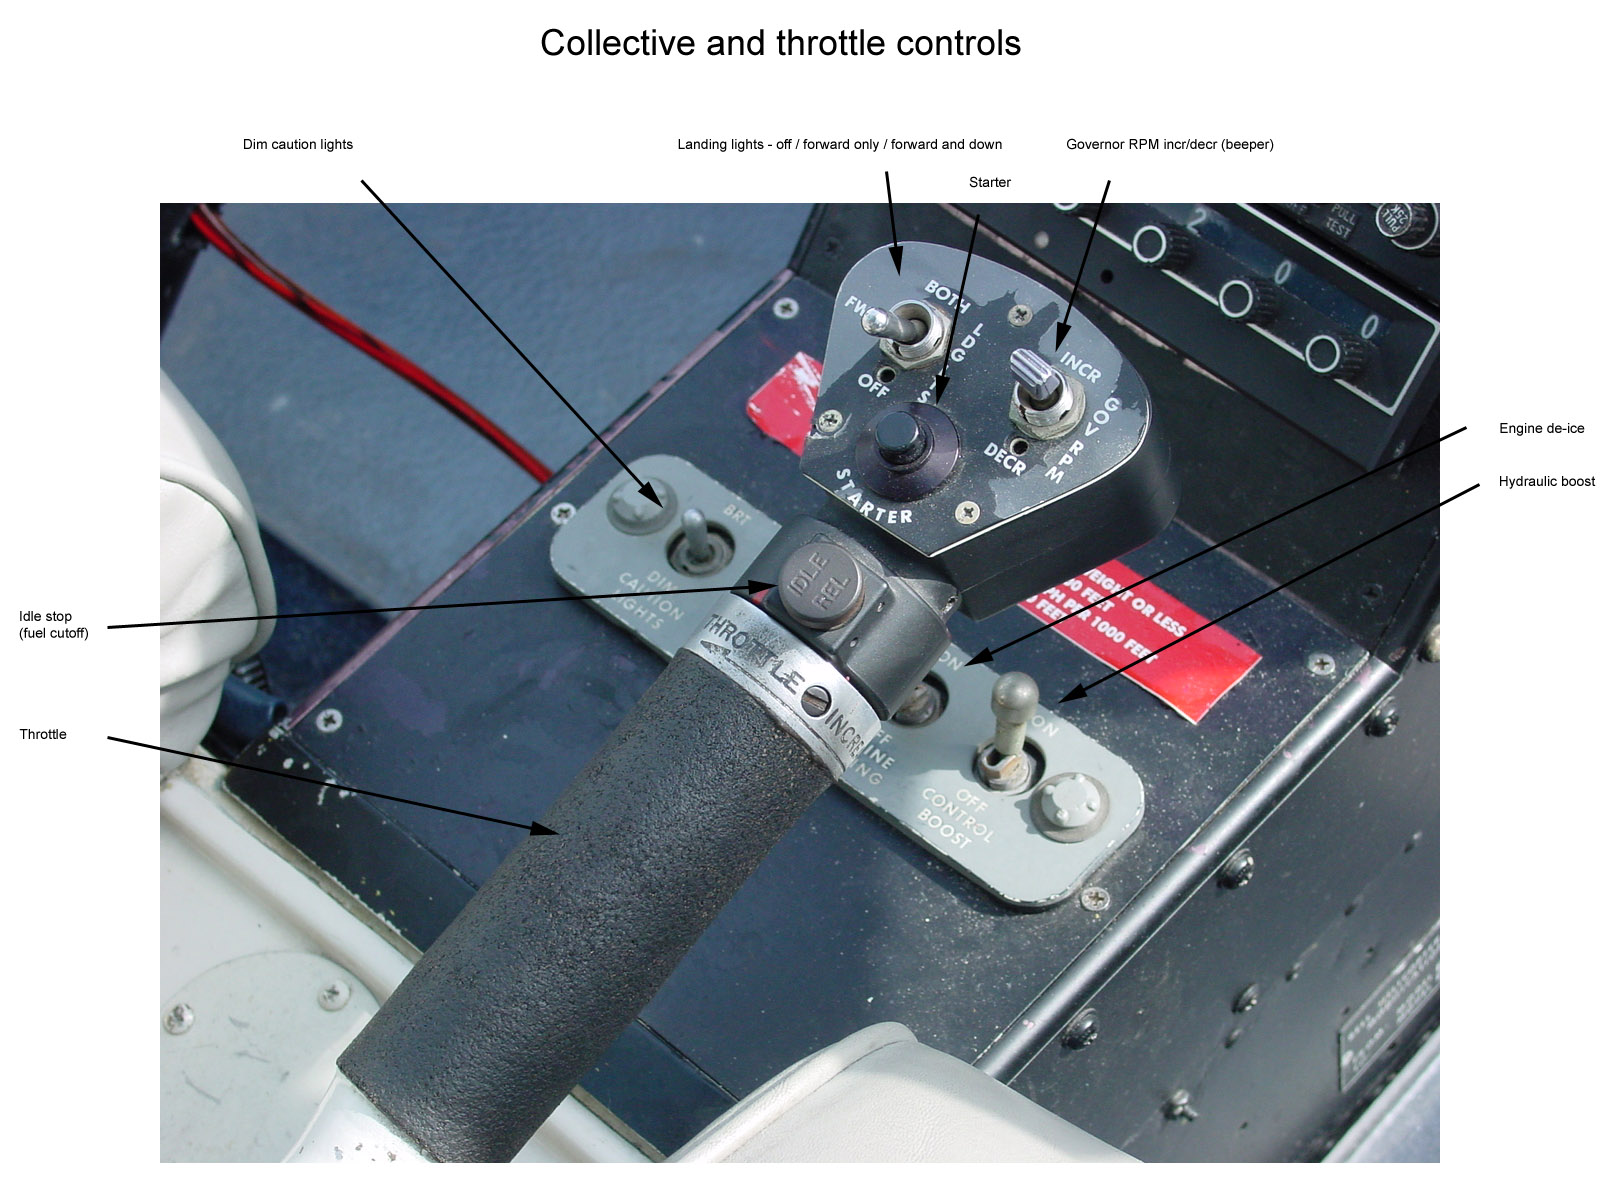 Overhead Aircraft Engine Control Lever : Welcome to fergworld a flying and aviation extravaganza